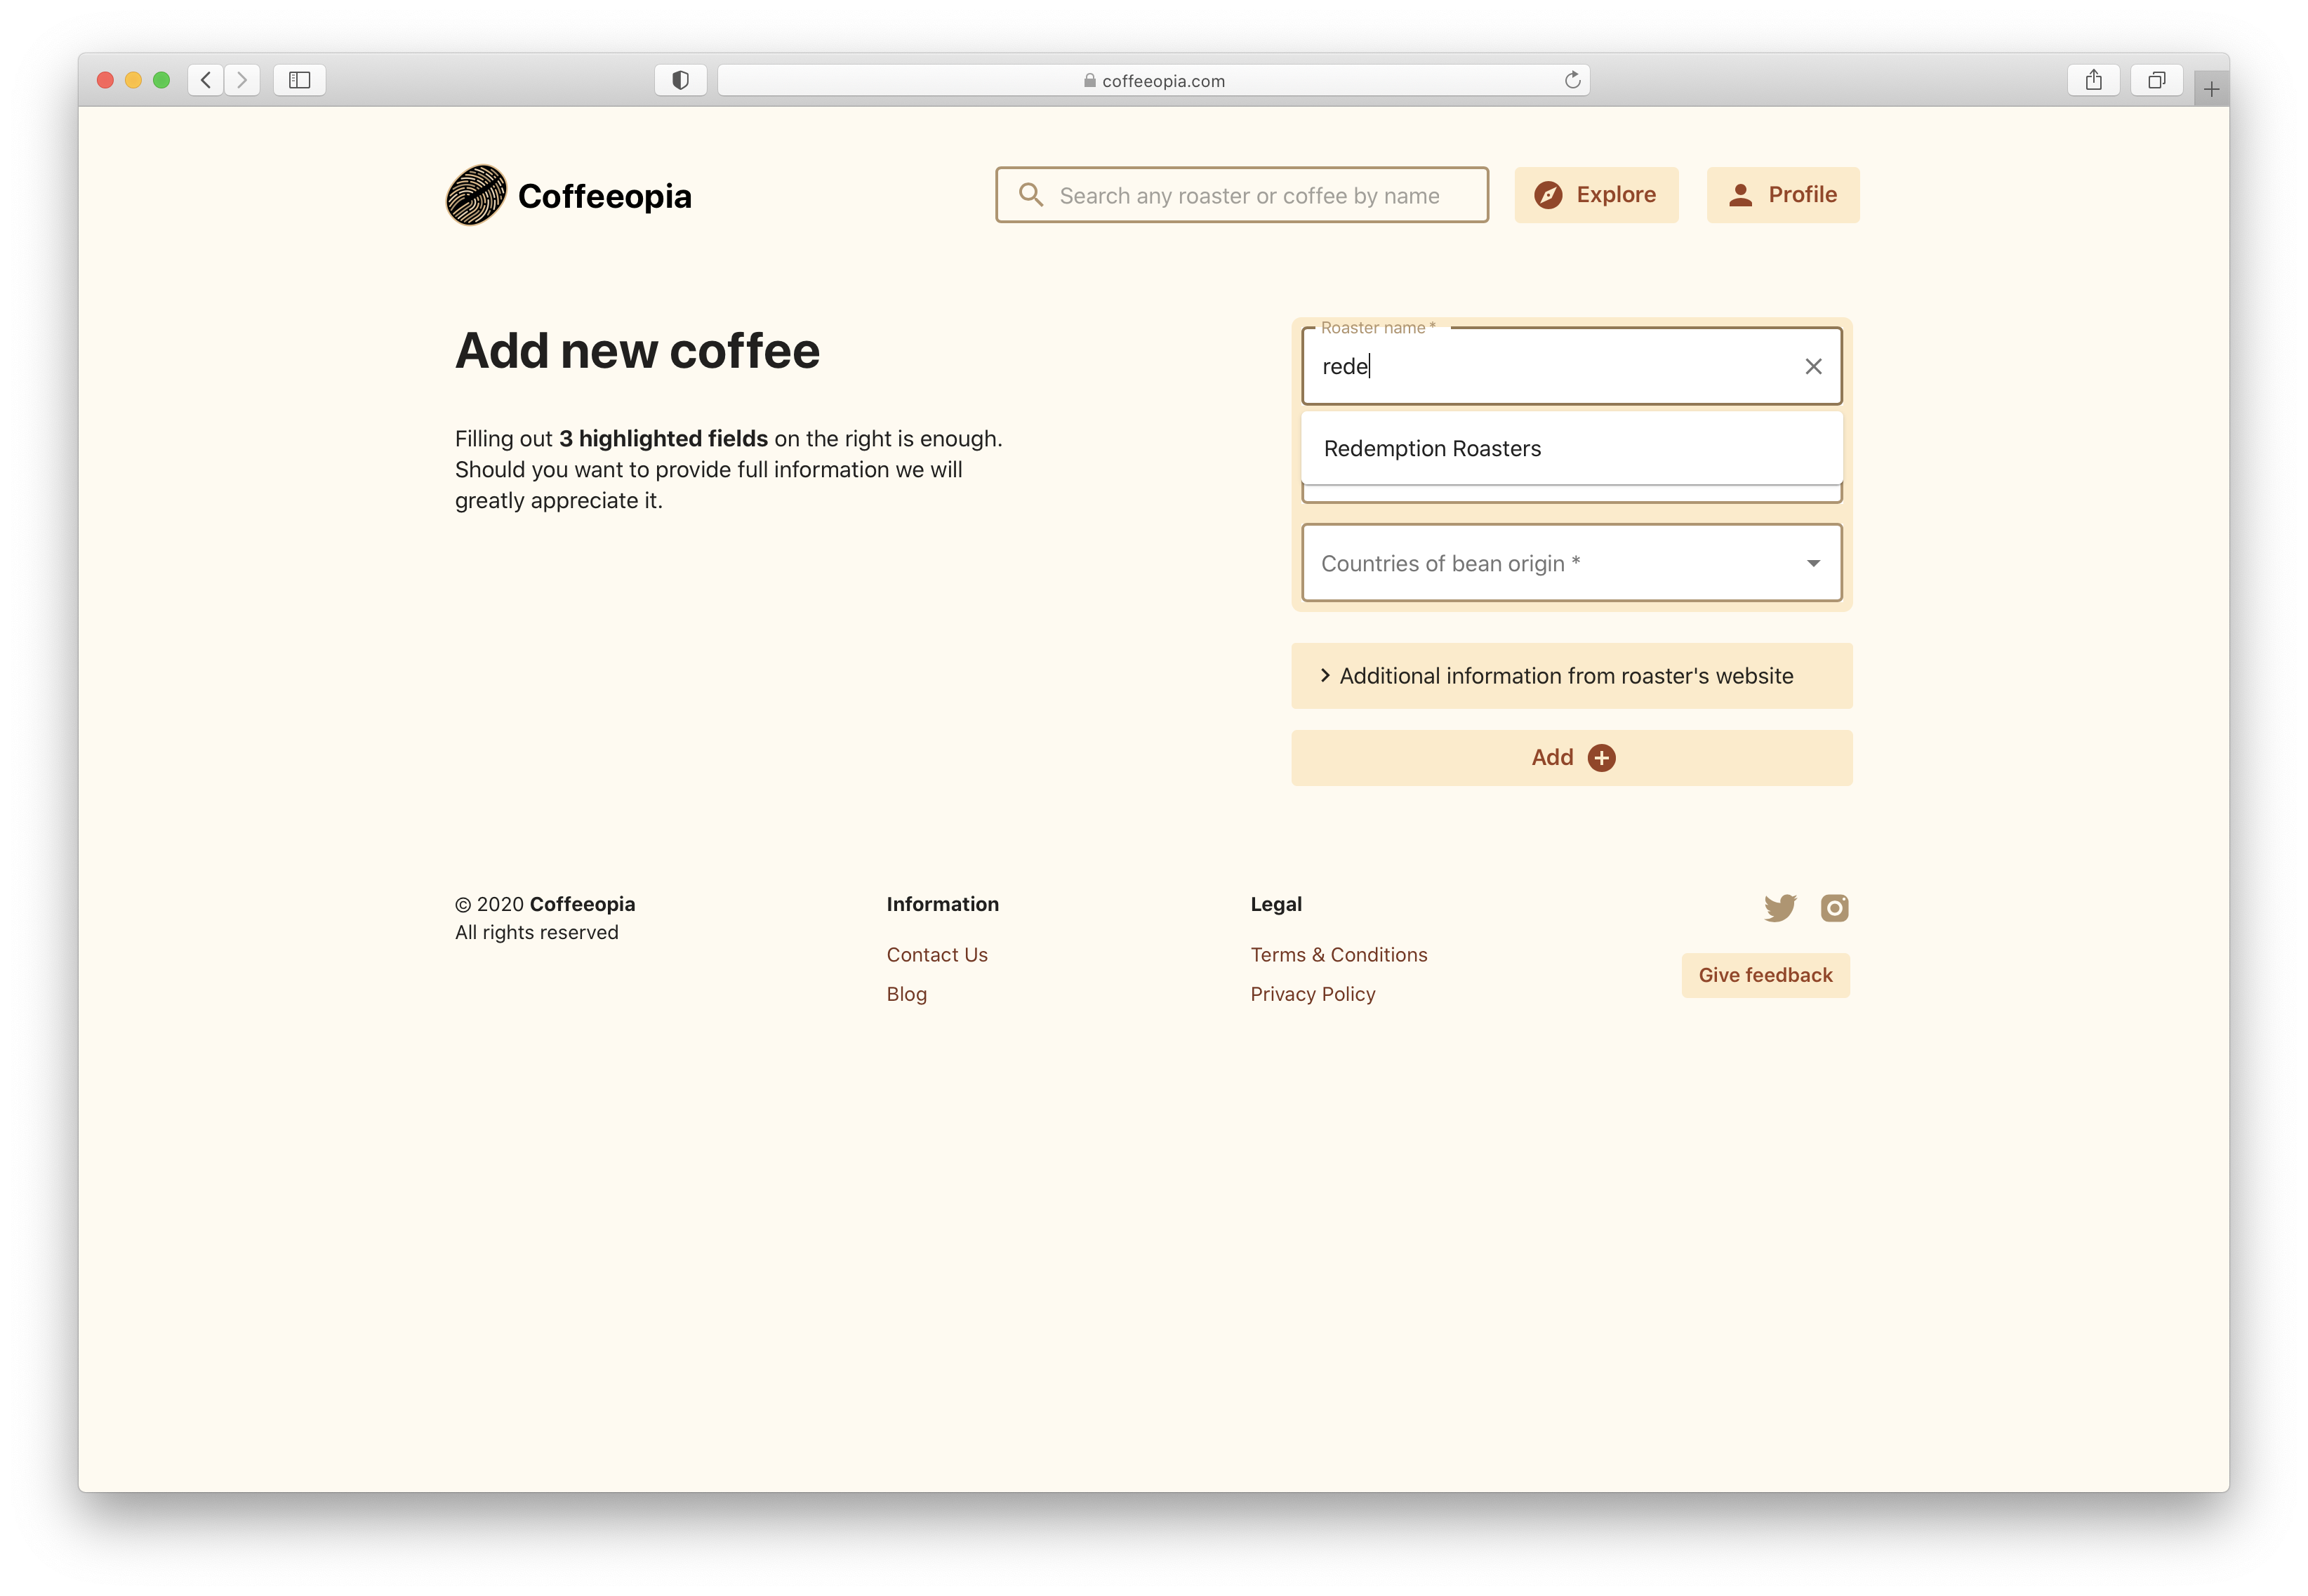 Adding a coffee item to an existing roaster on Coffeeopia